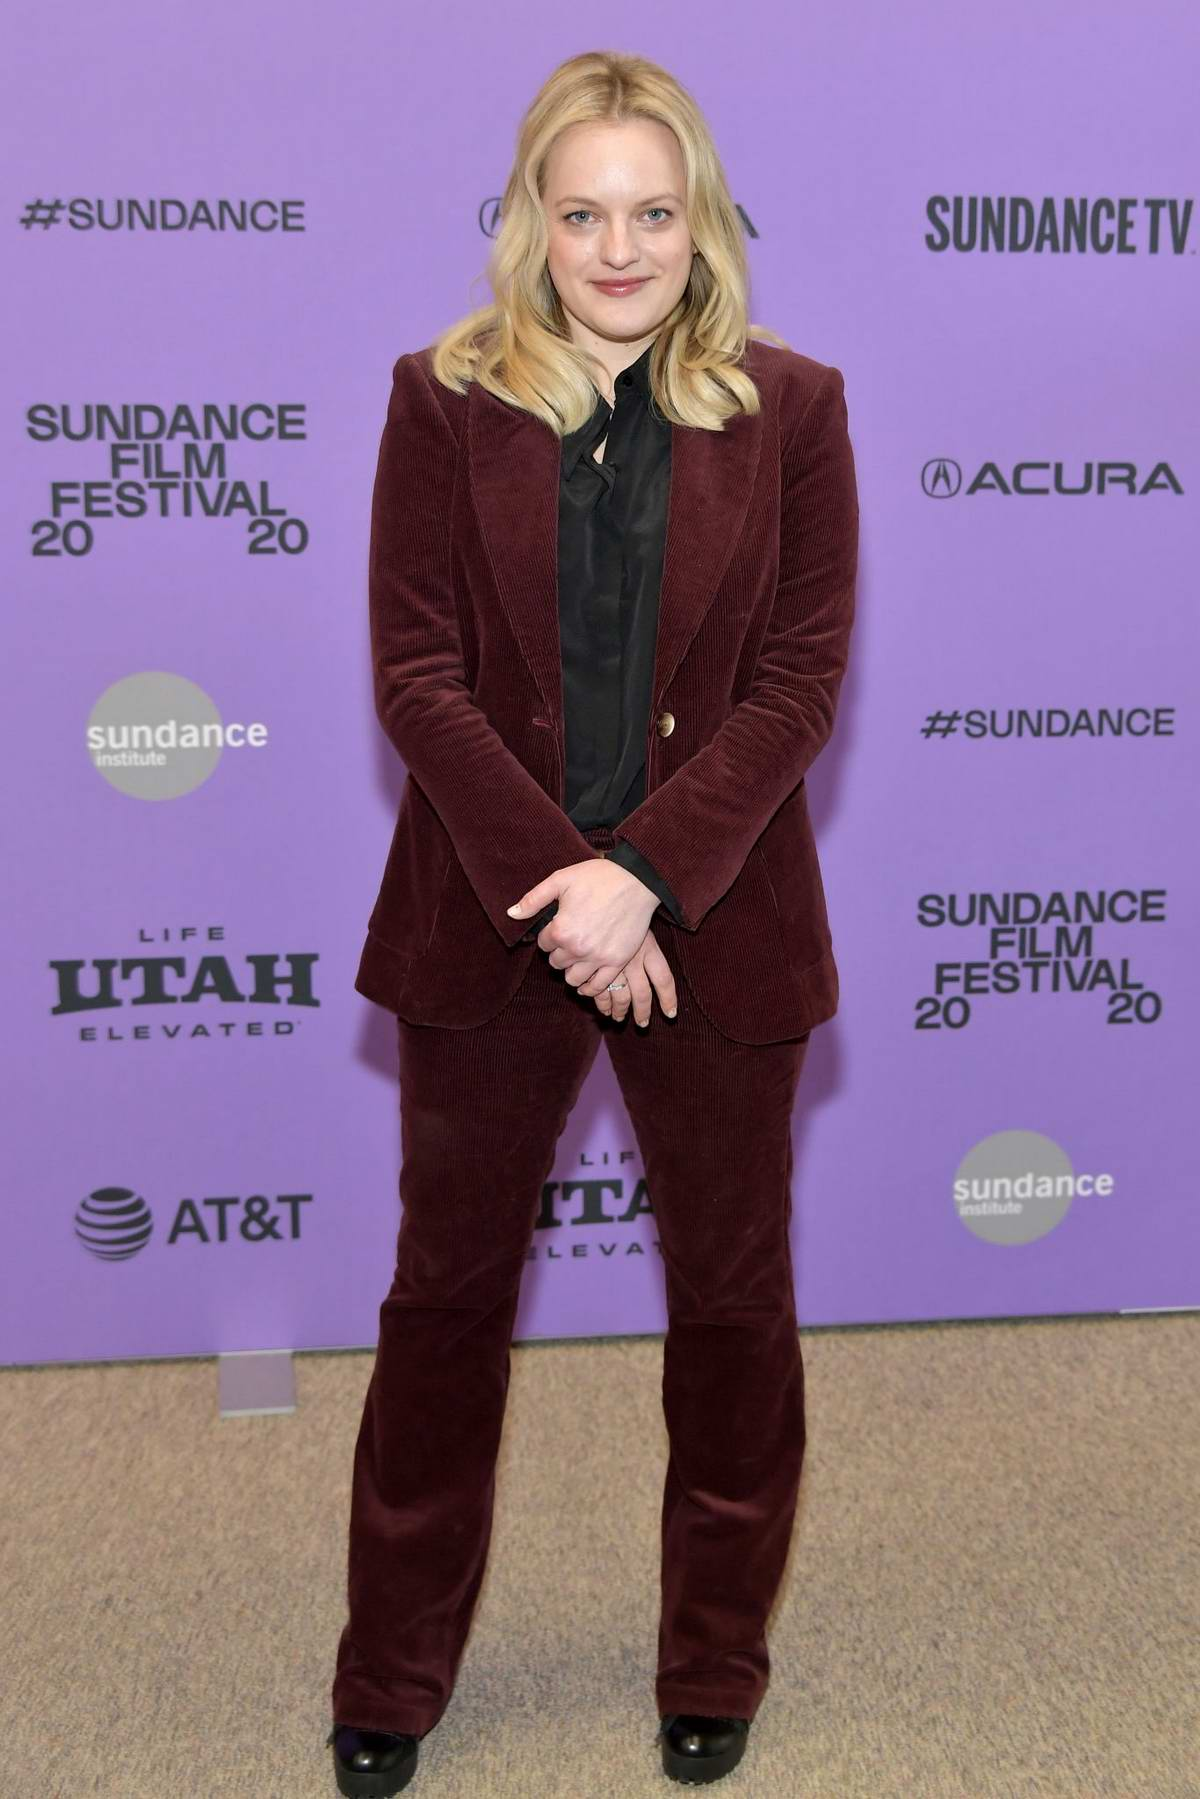 Elisabeth Moss attends the Premiere of 'Shirley' during the Sundance Film Festival 2020 in Park City, Utah